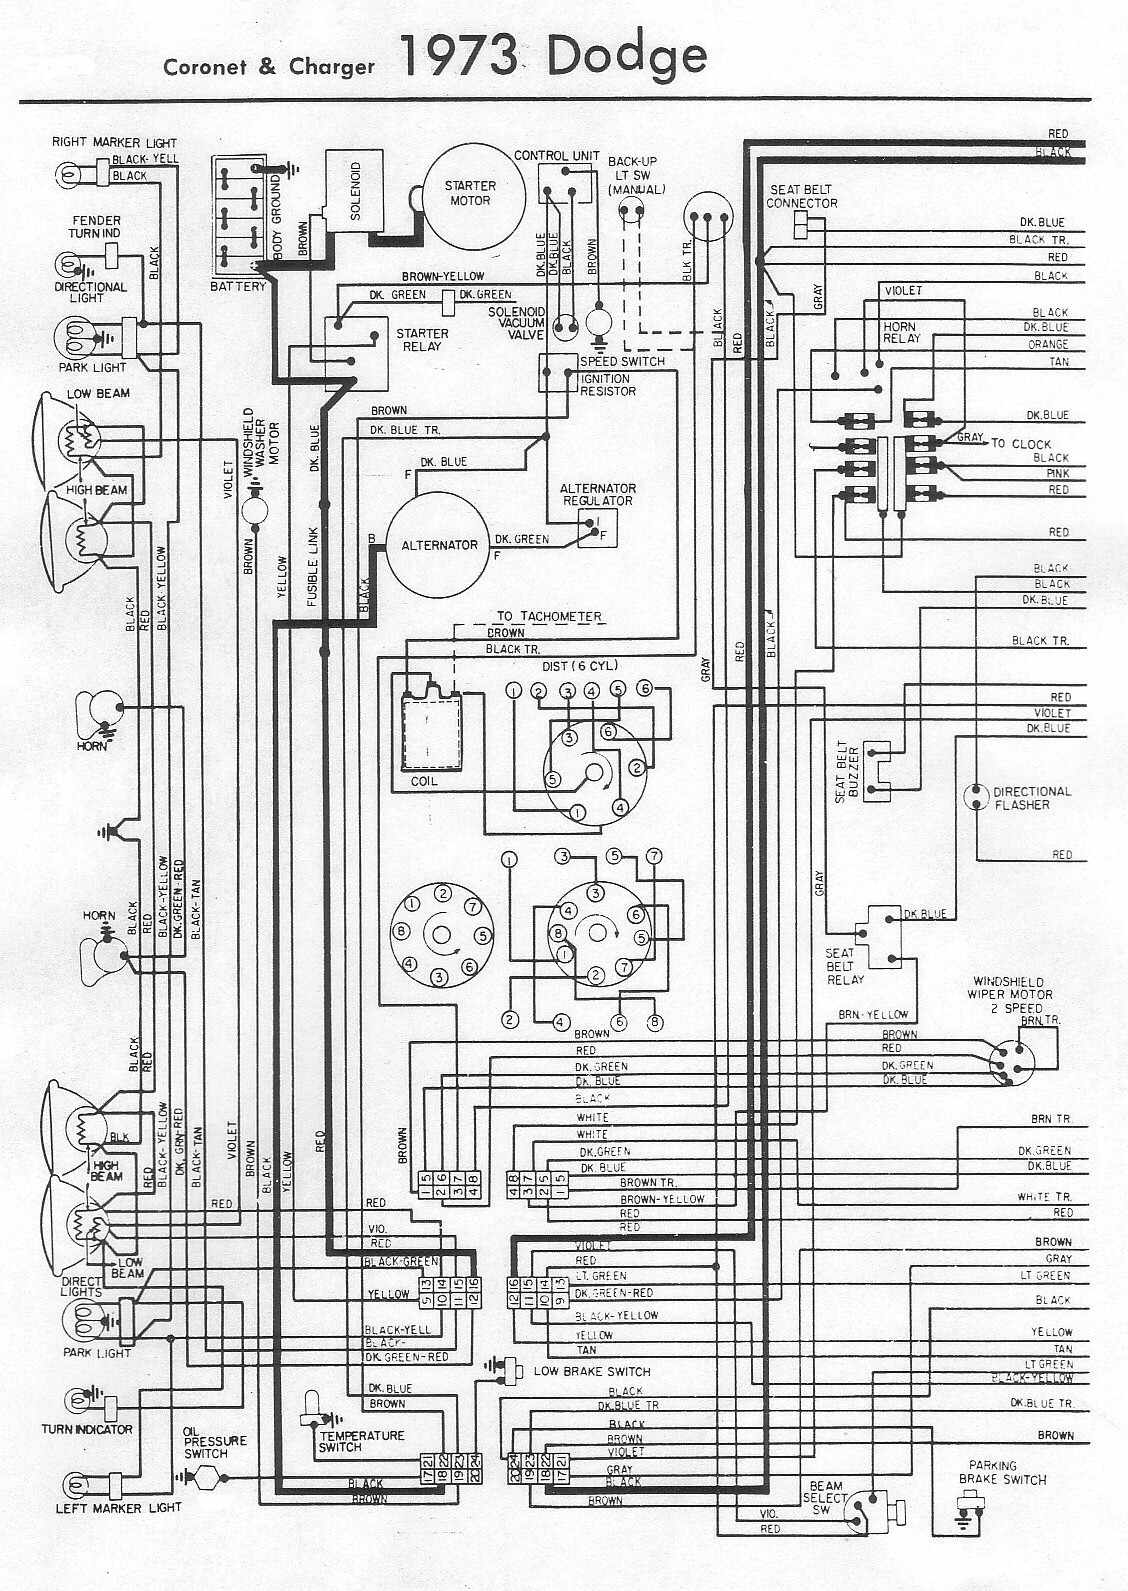 1973 Dodge Charger Wiring Diagram Detailed Chevy Charging Challenger Source F100 Brakelights